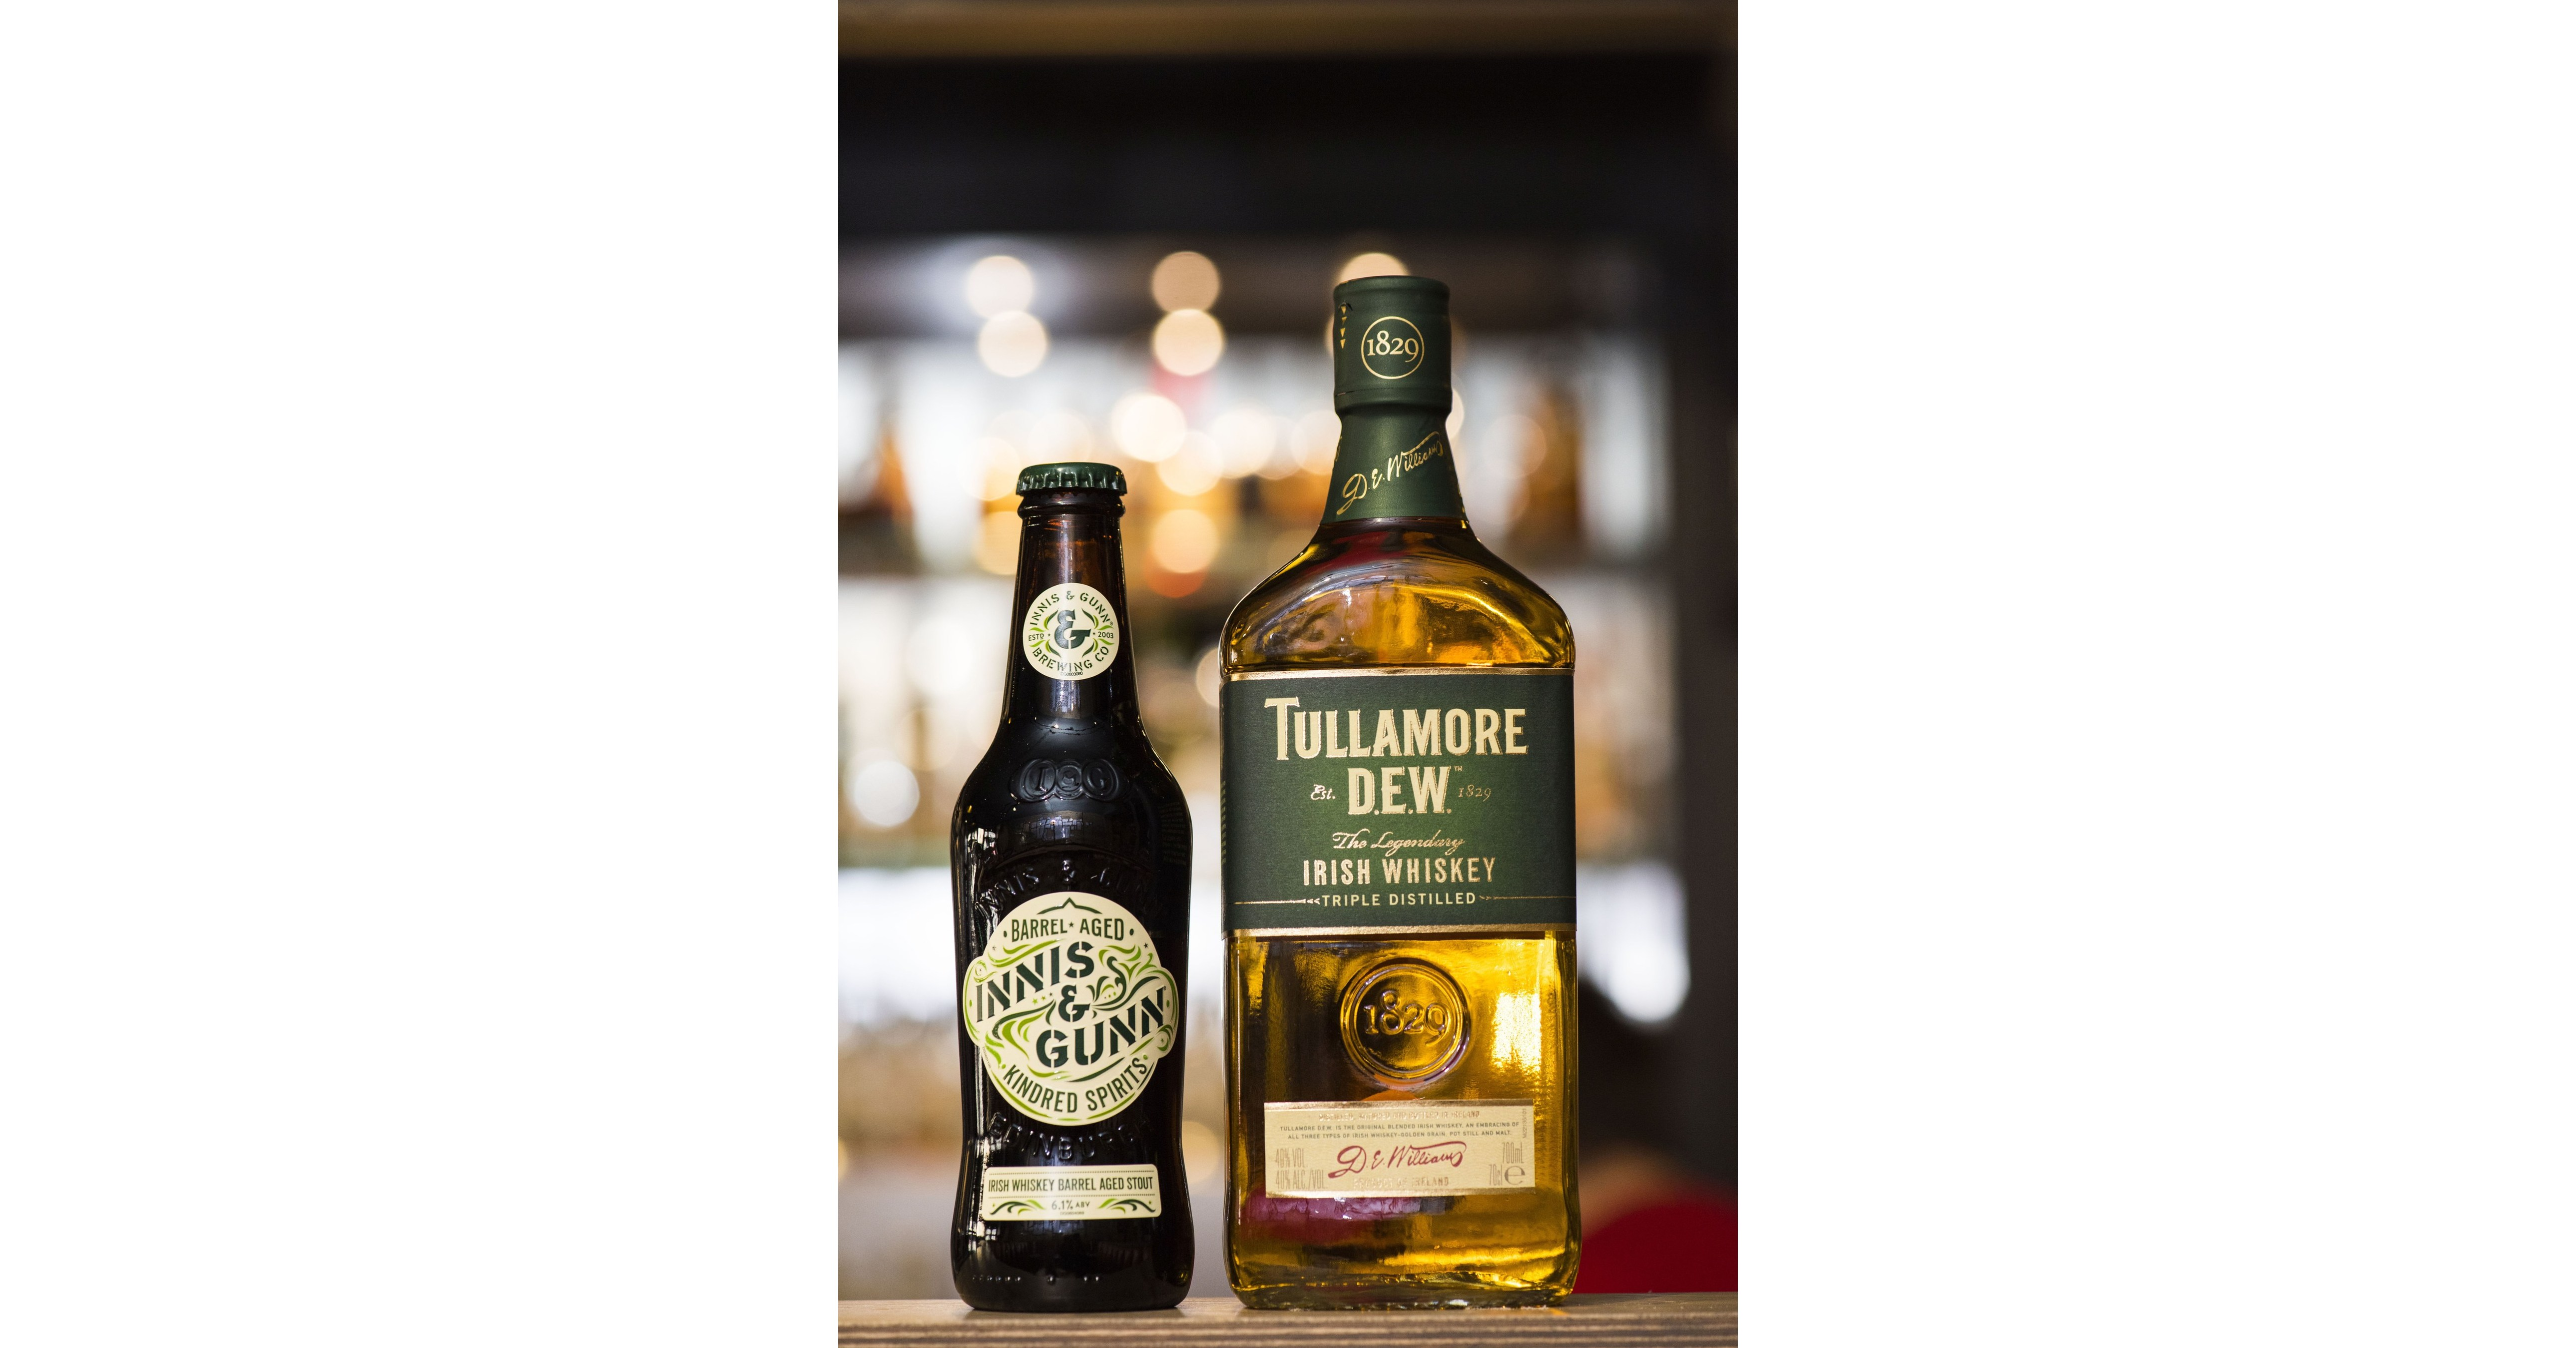 Innis & Gunn And Tullamore D.e.w. Combine Scots And Irish Craftsmanship To Launch New Limited Edition Irish Whiskey Barrel Aged Stout photo